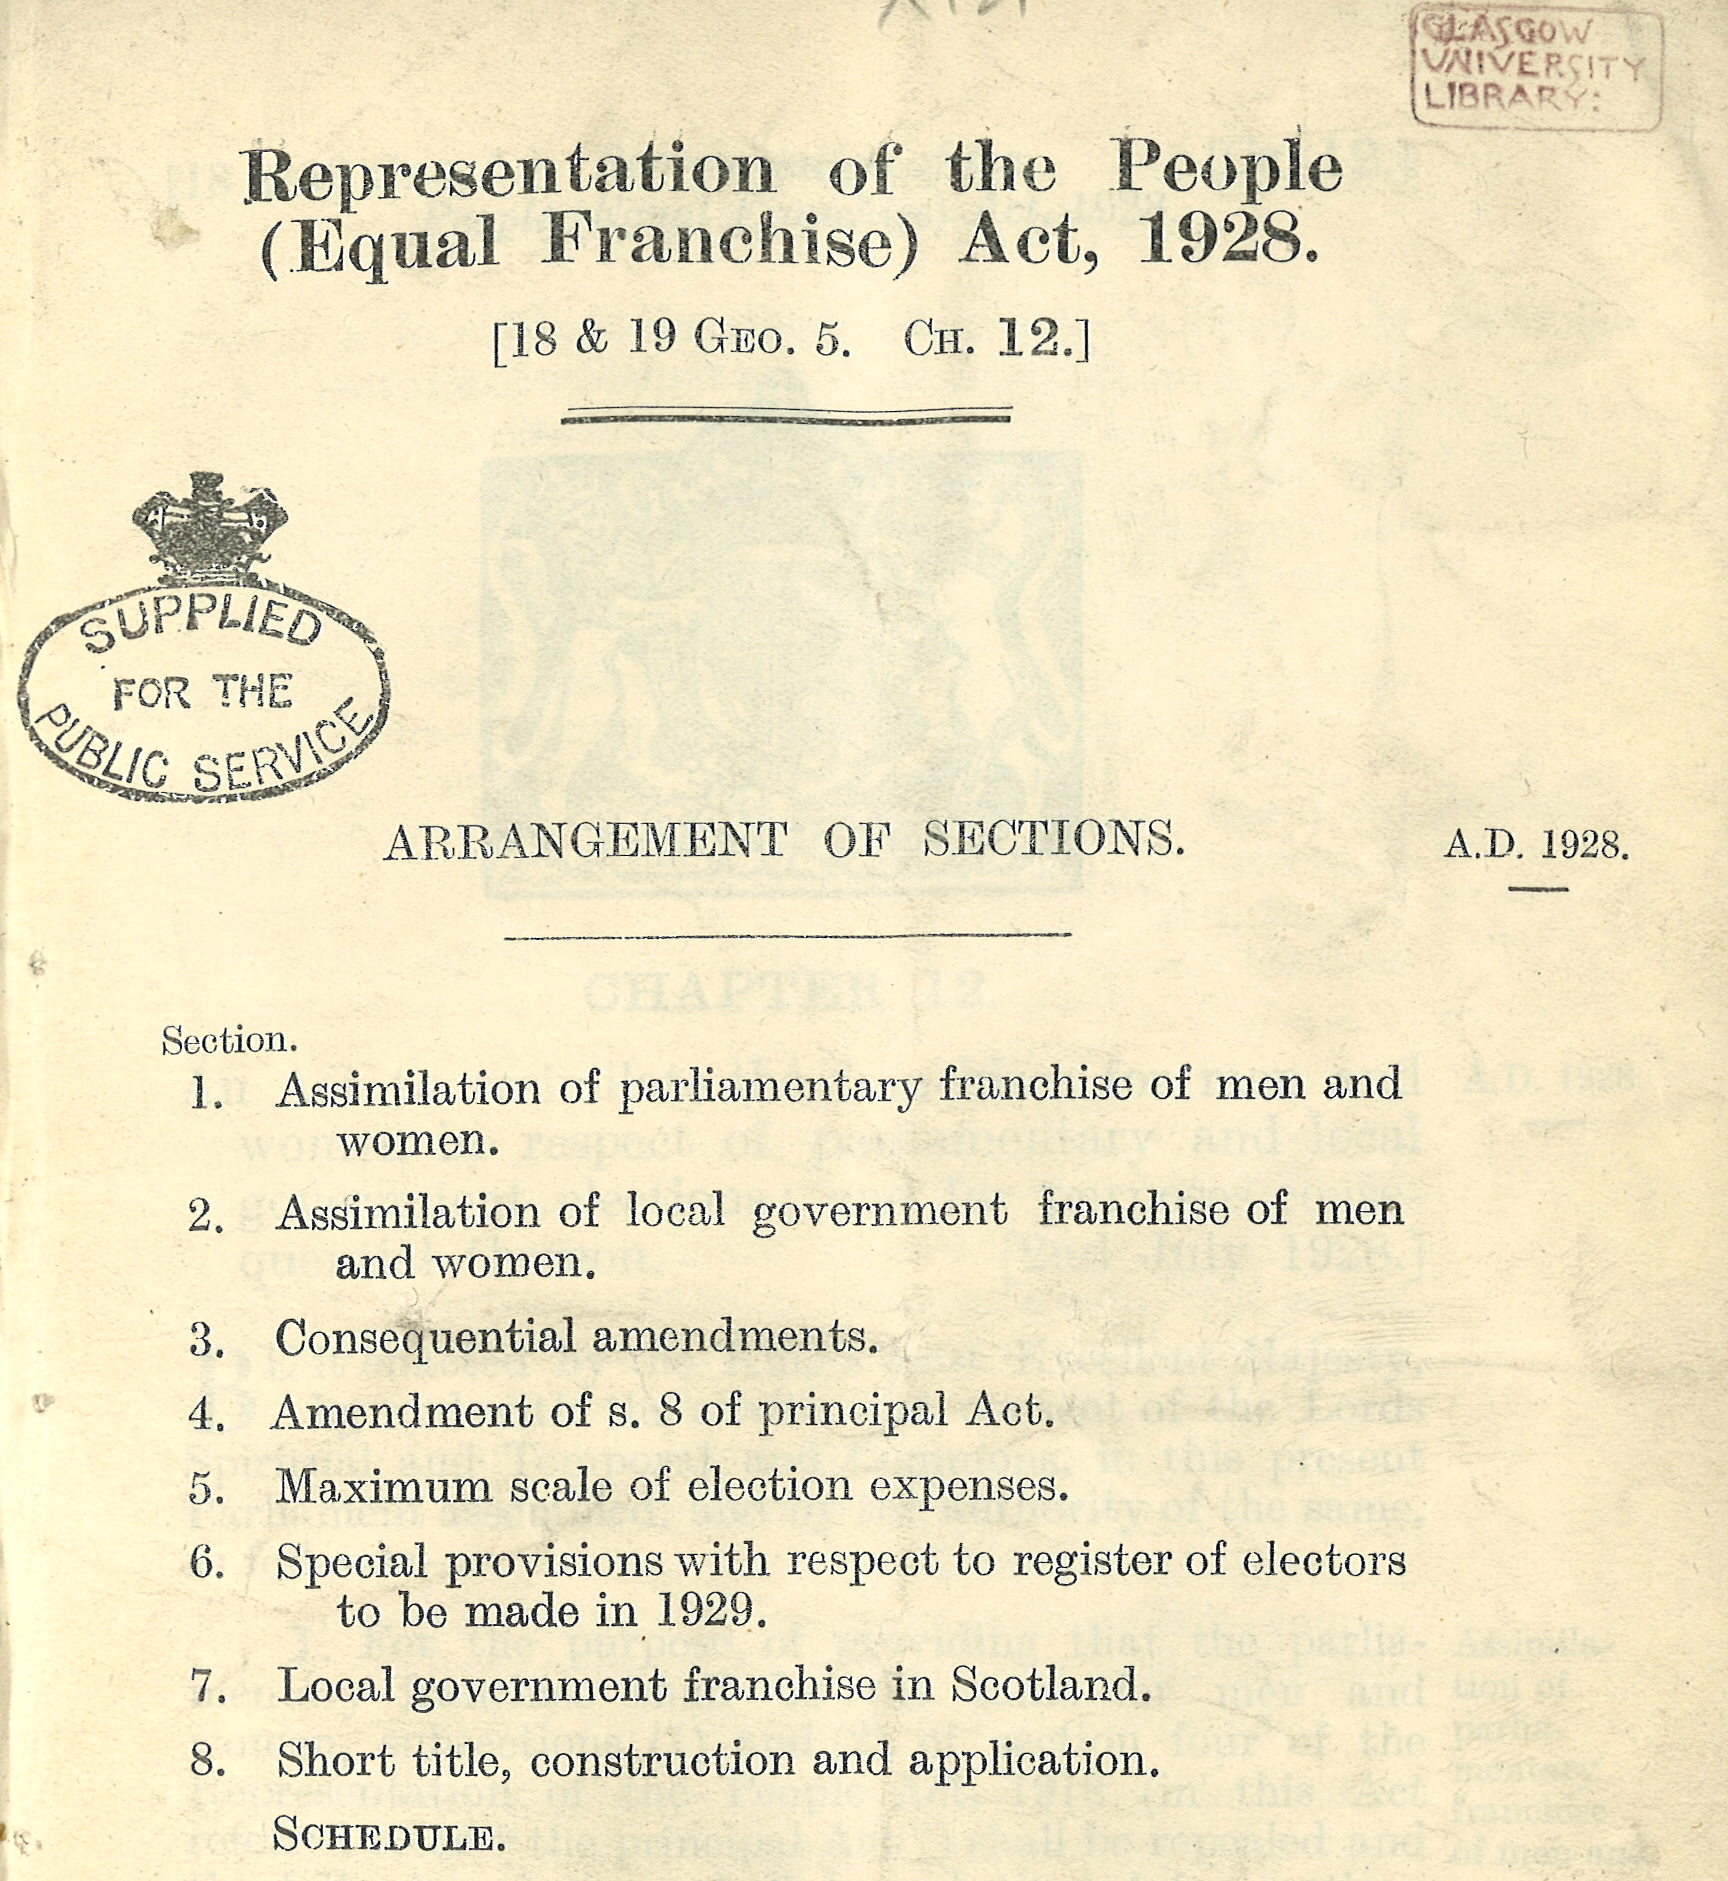 an introduction to the representation of the peoples act To commemorate the 100th anniversary of the representation of the people act, 1918, proni in conjunction with queens university belfast and the ulster society of irish historical studies hosted a full day conference examining the history and context of the act on 6 february 2018.